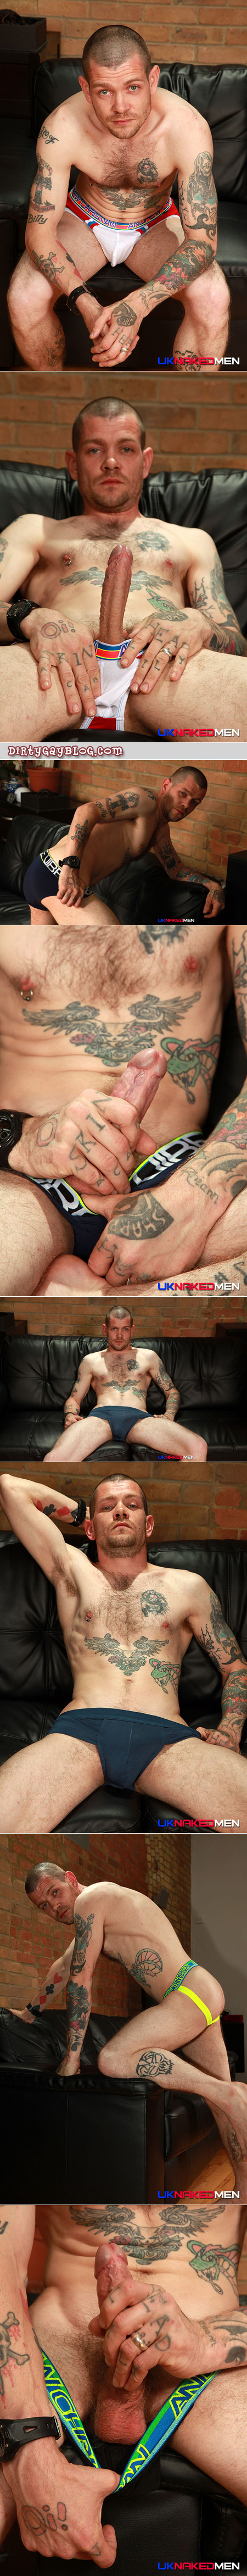 Married straight guy with a big hard dick modeling underwear.